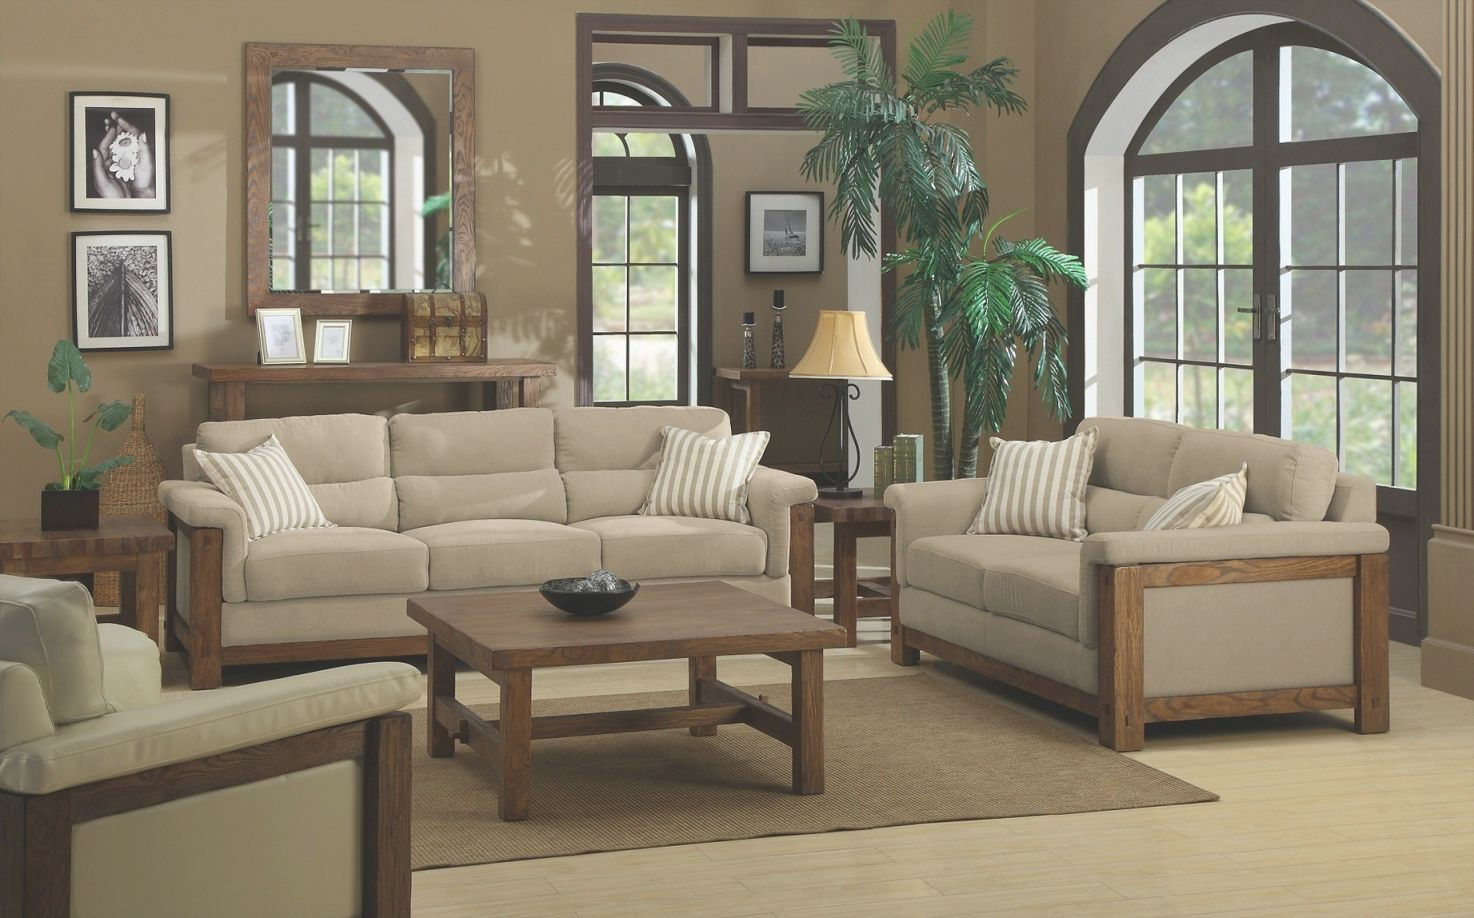 Living Room Furniture Cheap Sofa Rustic Gray Fabric Sets pertaining to Chairs For Living Room Cheap